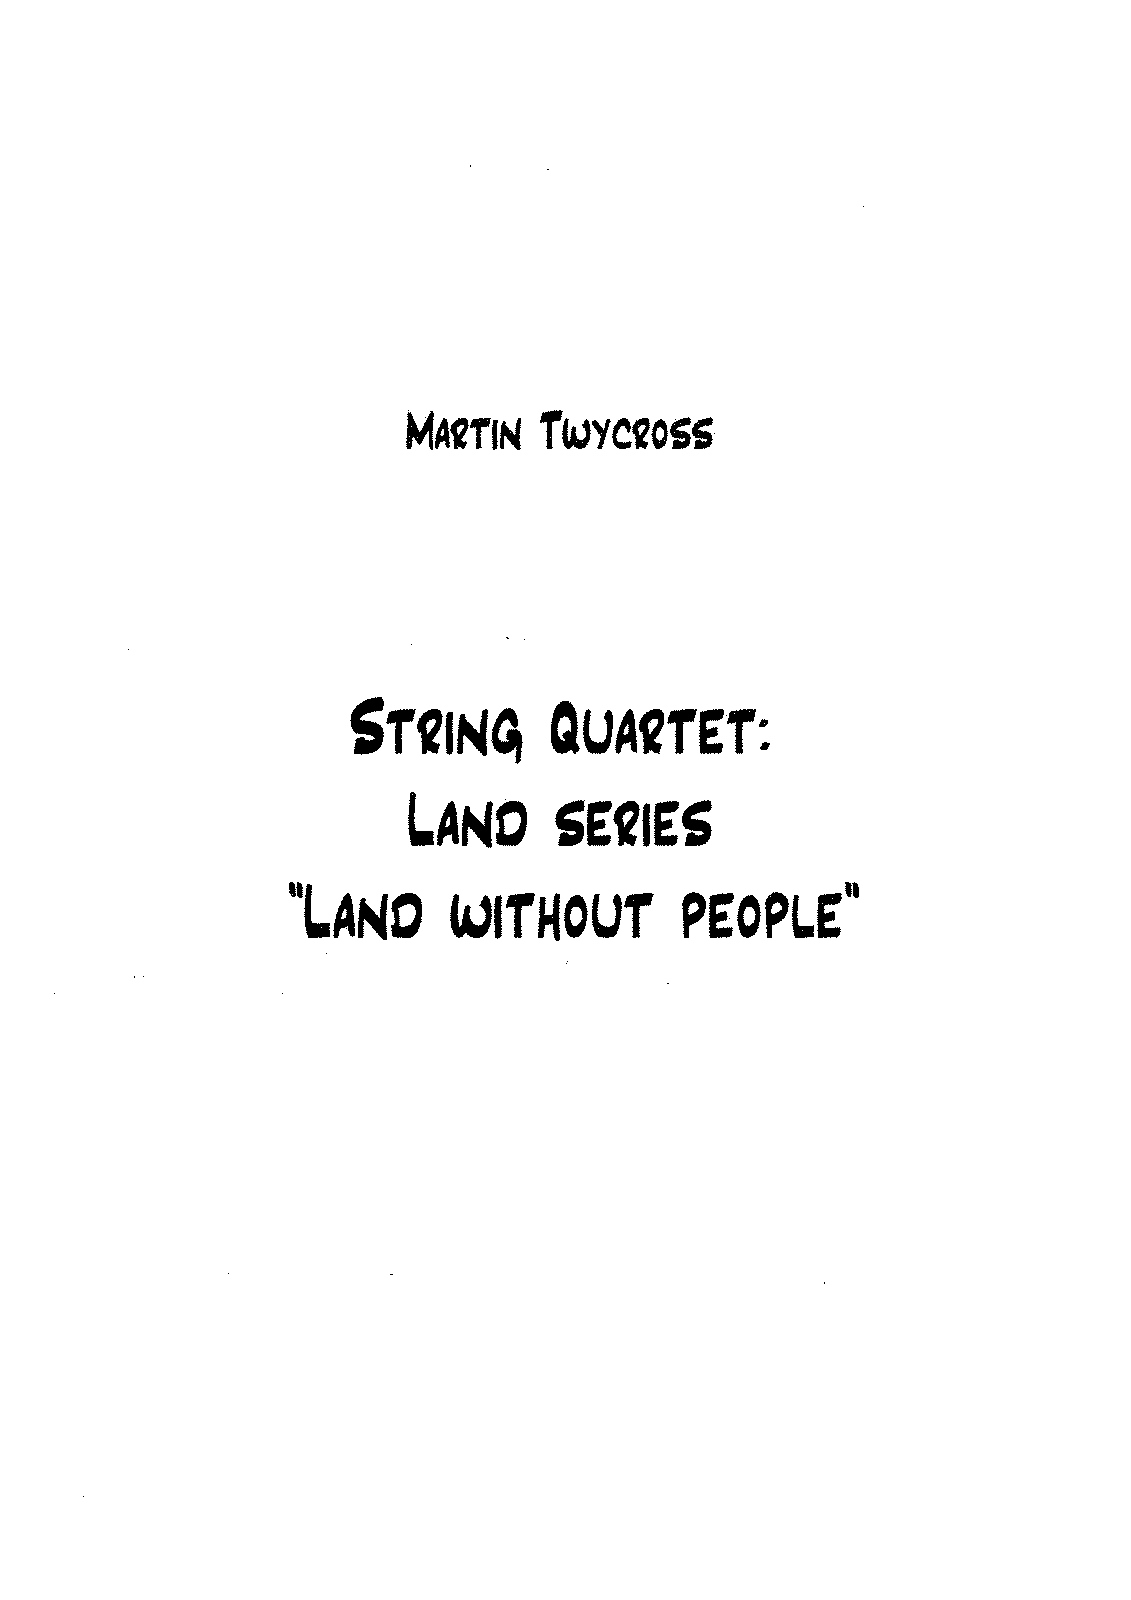 PMLP204353-String Quartet Land series Land without people (Martin Twycross).pdf